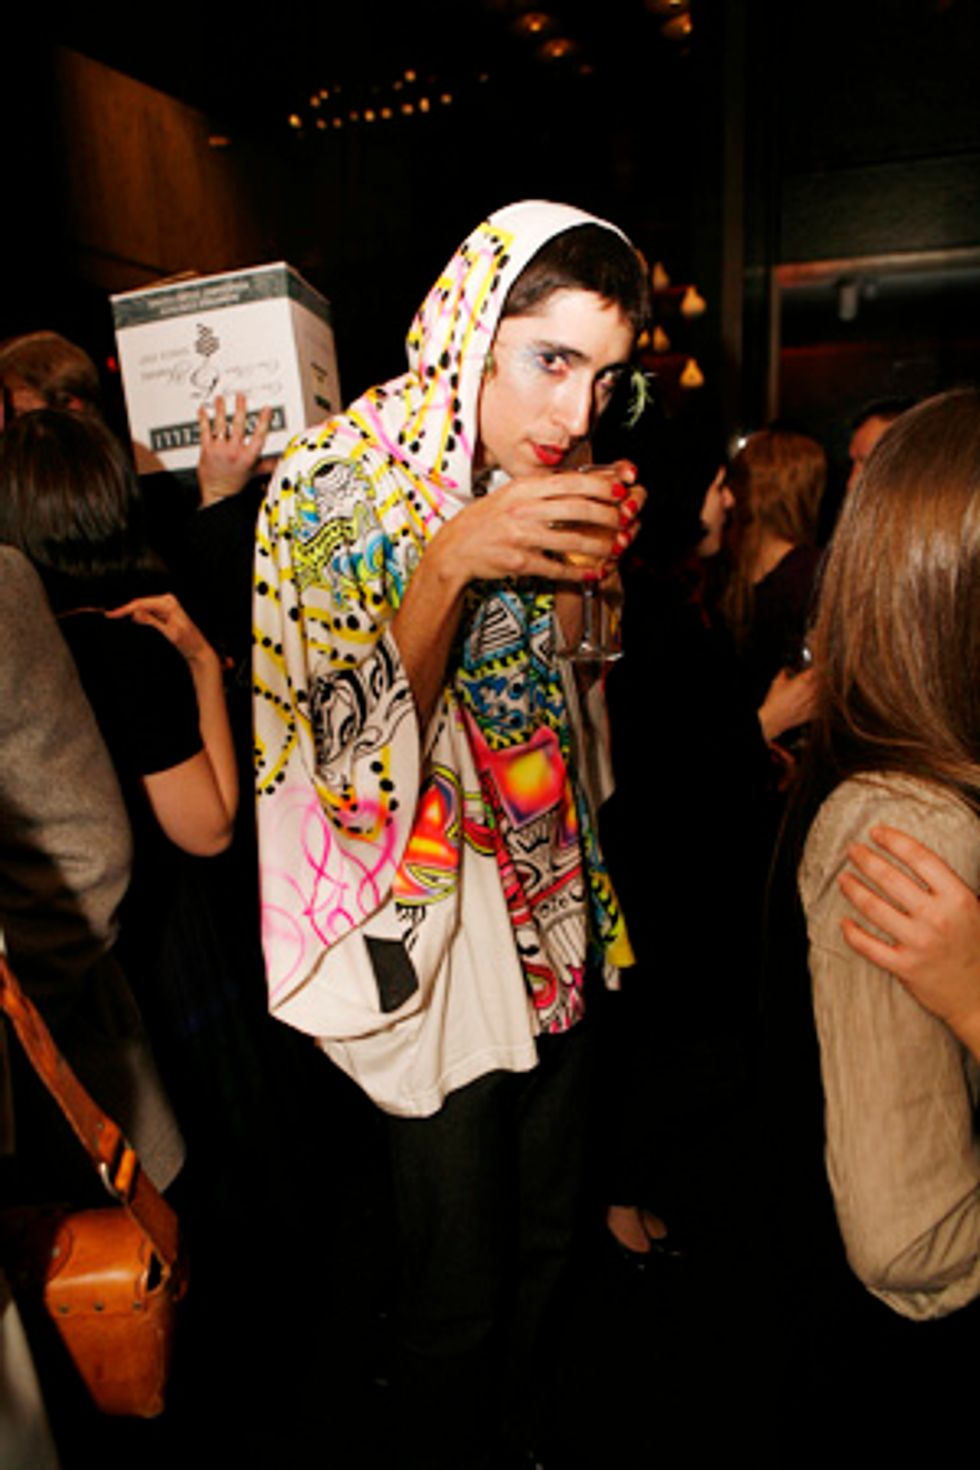 Whitney Biennial's Opening Night Party Is a Boozy, Arty Fest